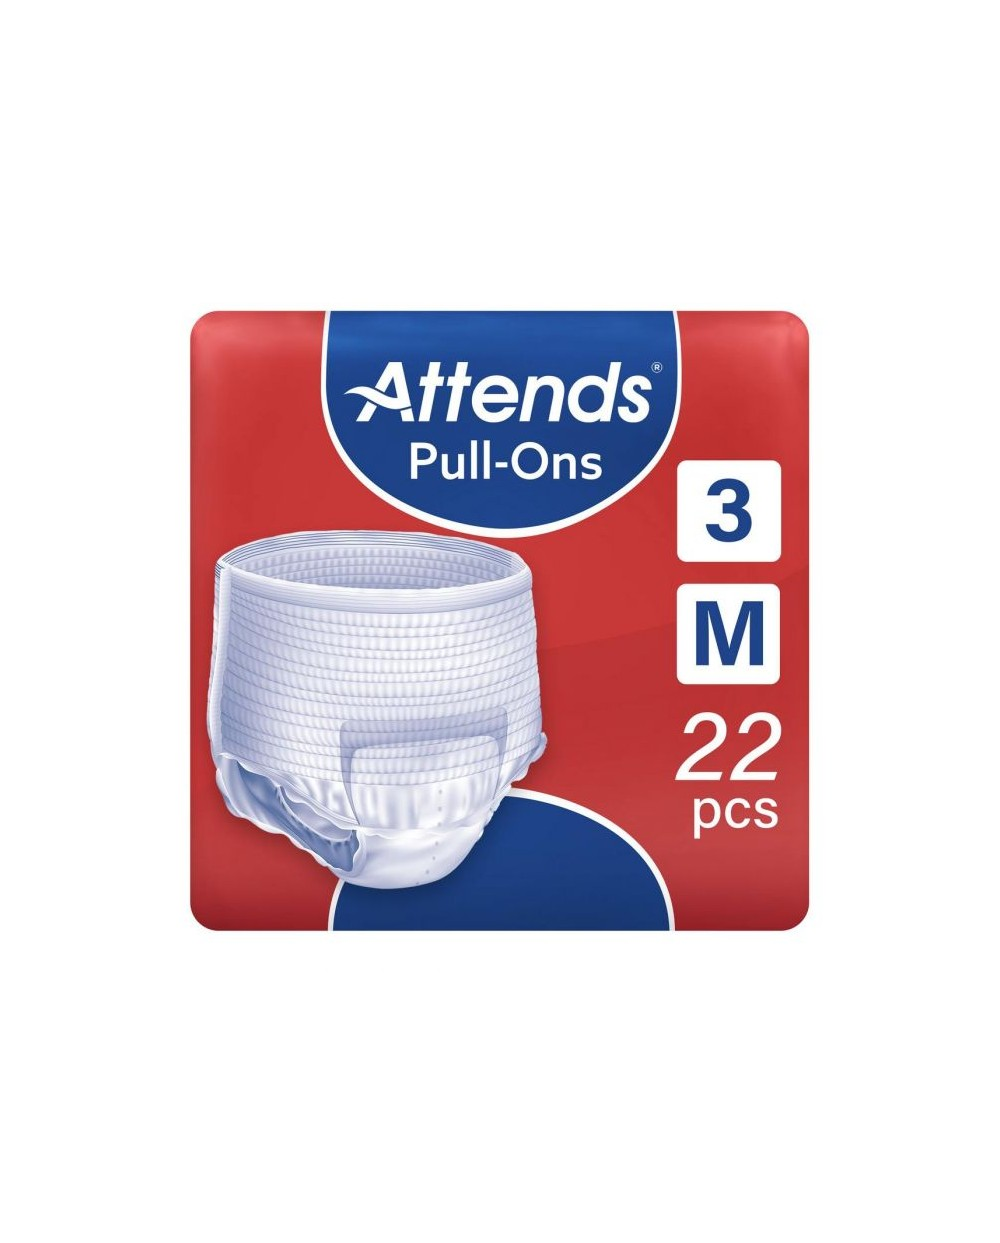 ATTENDS Pull-Ons 3 Medium - 22 protections